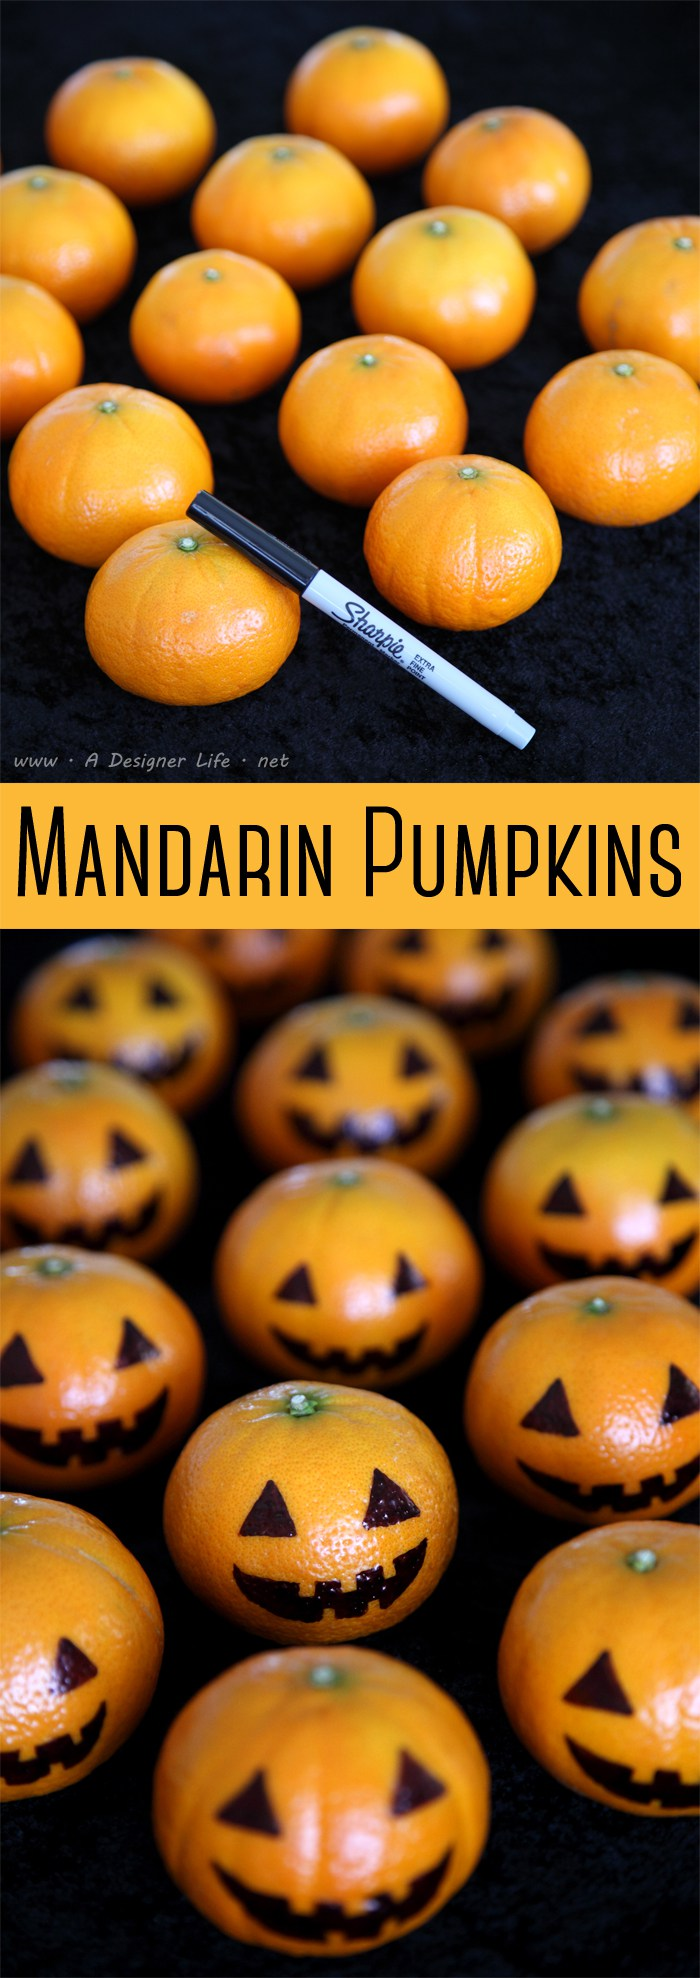 mandarine-pumpkins-small